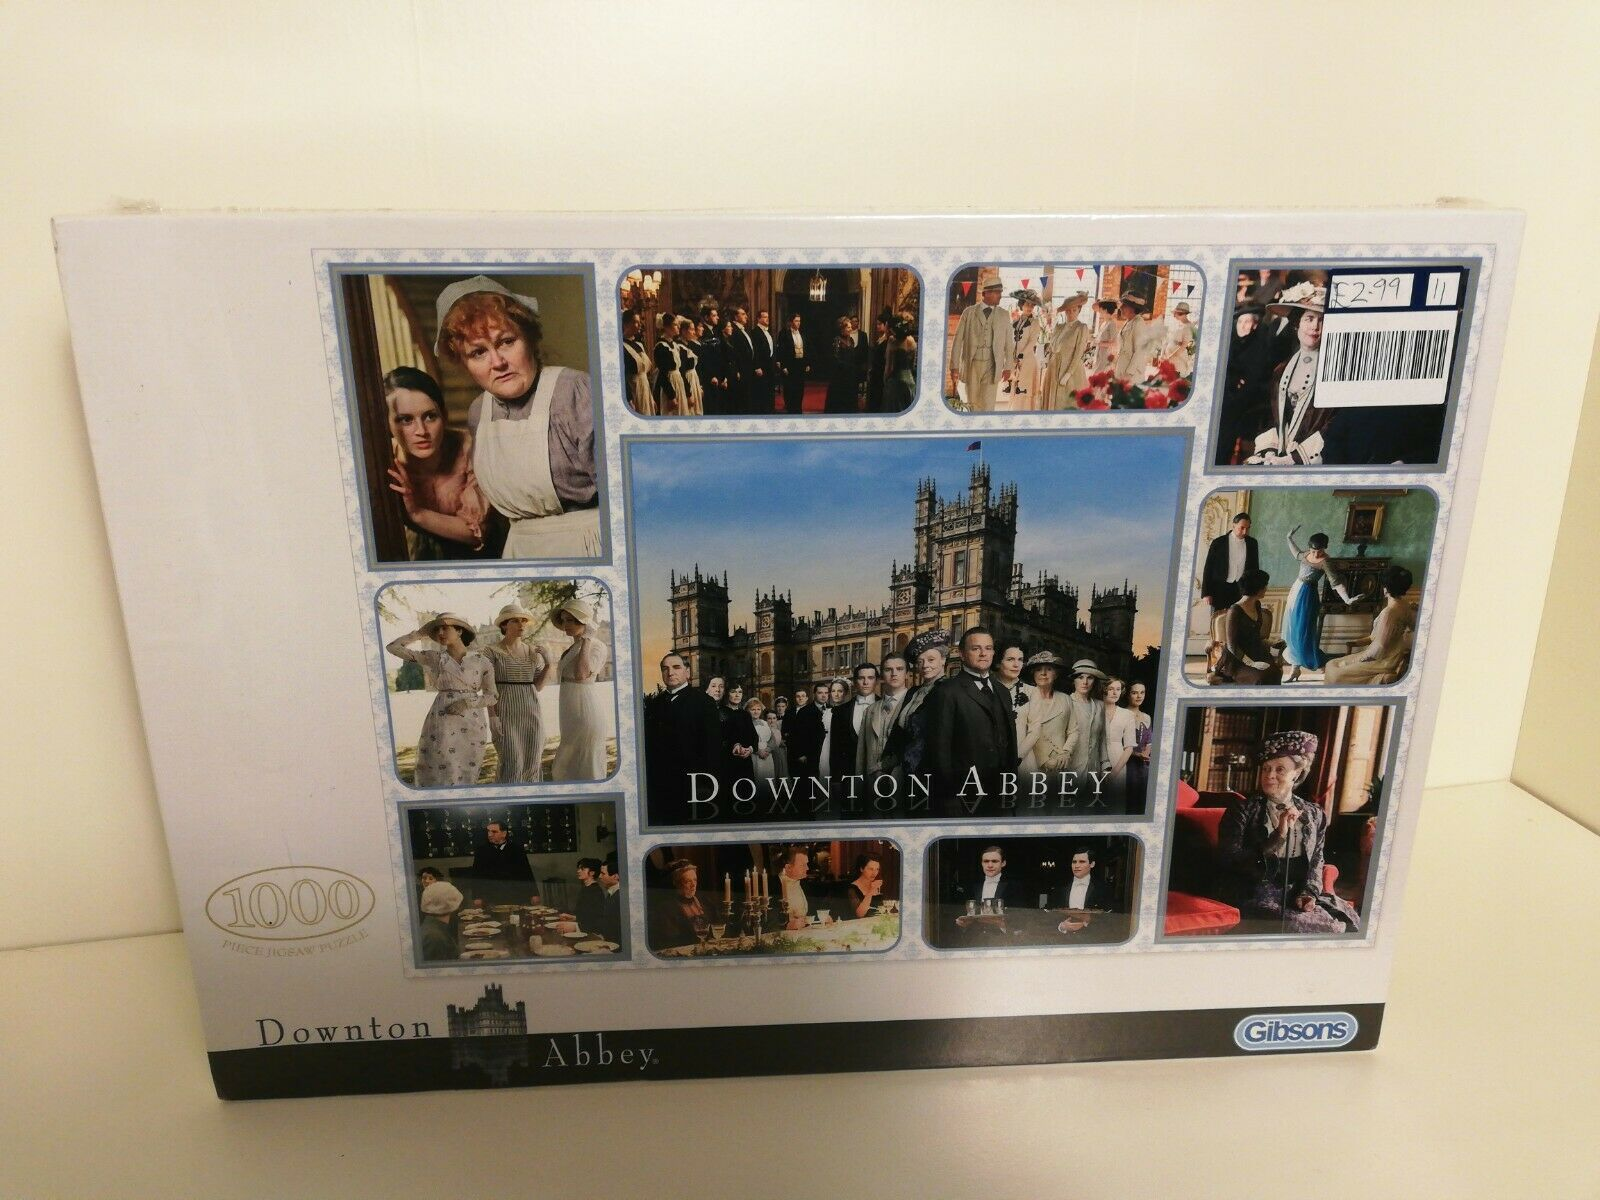 Gibsons Downton Abbey Jigsaw Puzzle 1000 Pieces